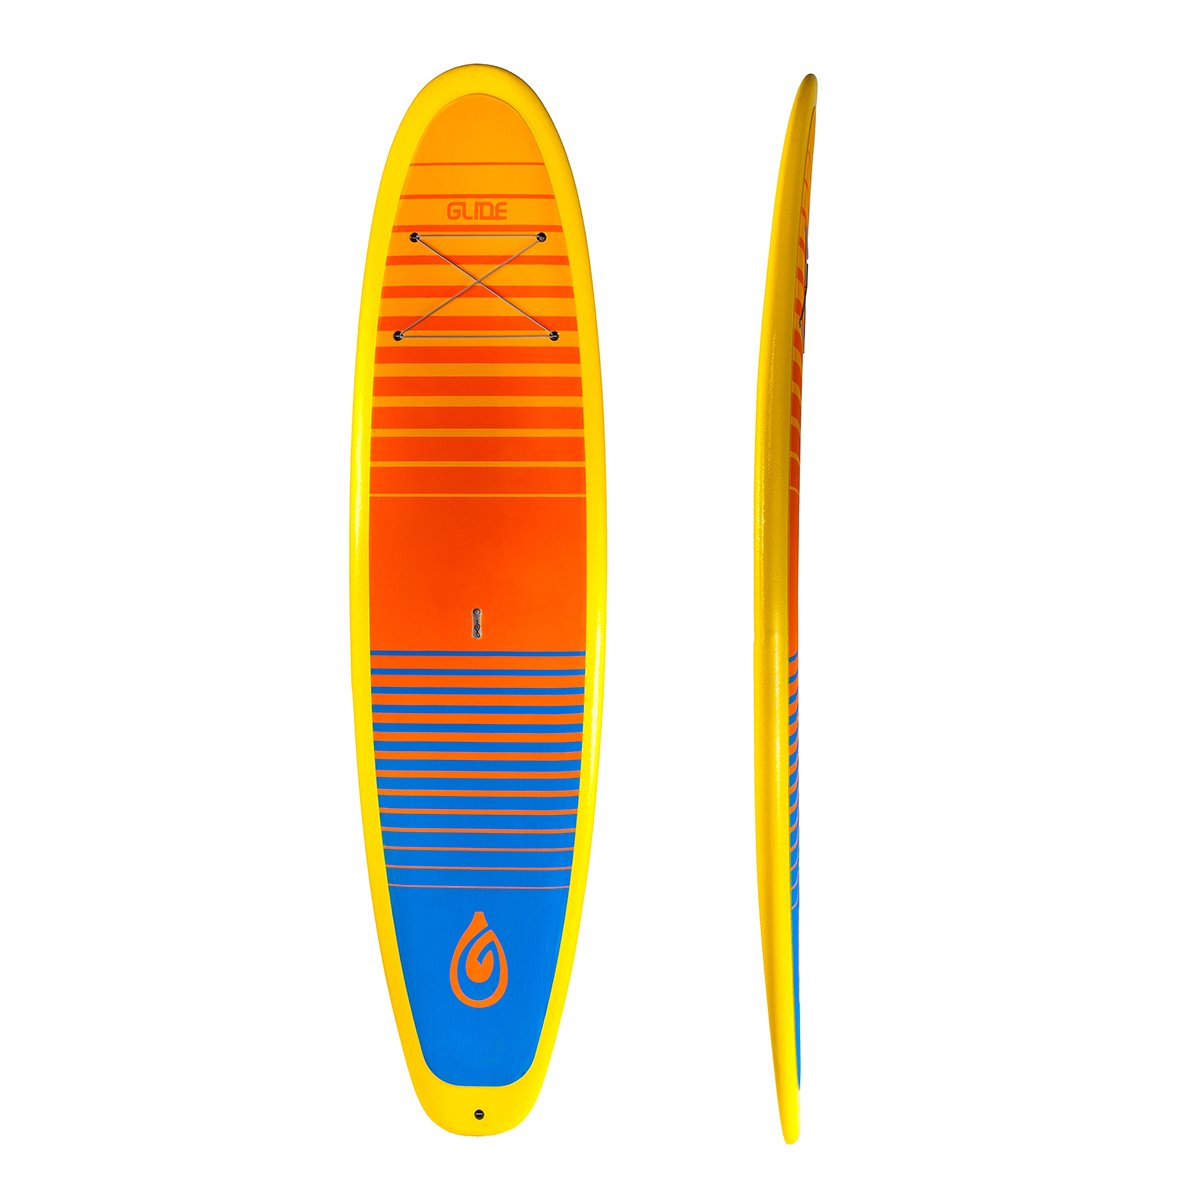 Retro:  11'. The Retro is Glide's take on the classic surf board design. Cruise your local lake in style. The Retro is also a capable whitewater and ocean surf board.  Some things never go out of style. Glide had to pay homage to the classic surf shapes used by so many from the Waikiki Beach Boys, to present day SUP pioneers. Take this board to the lake for a day of fun, run up to class II whitewater or take this board to the ocean where it's classic design will excel.